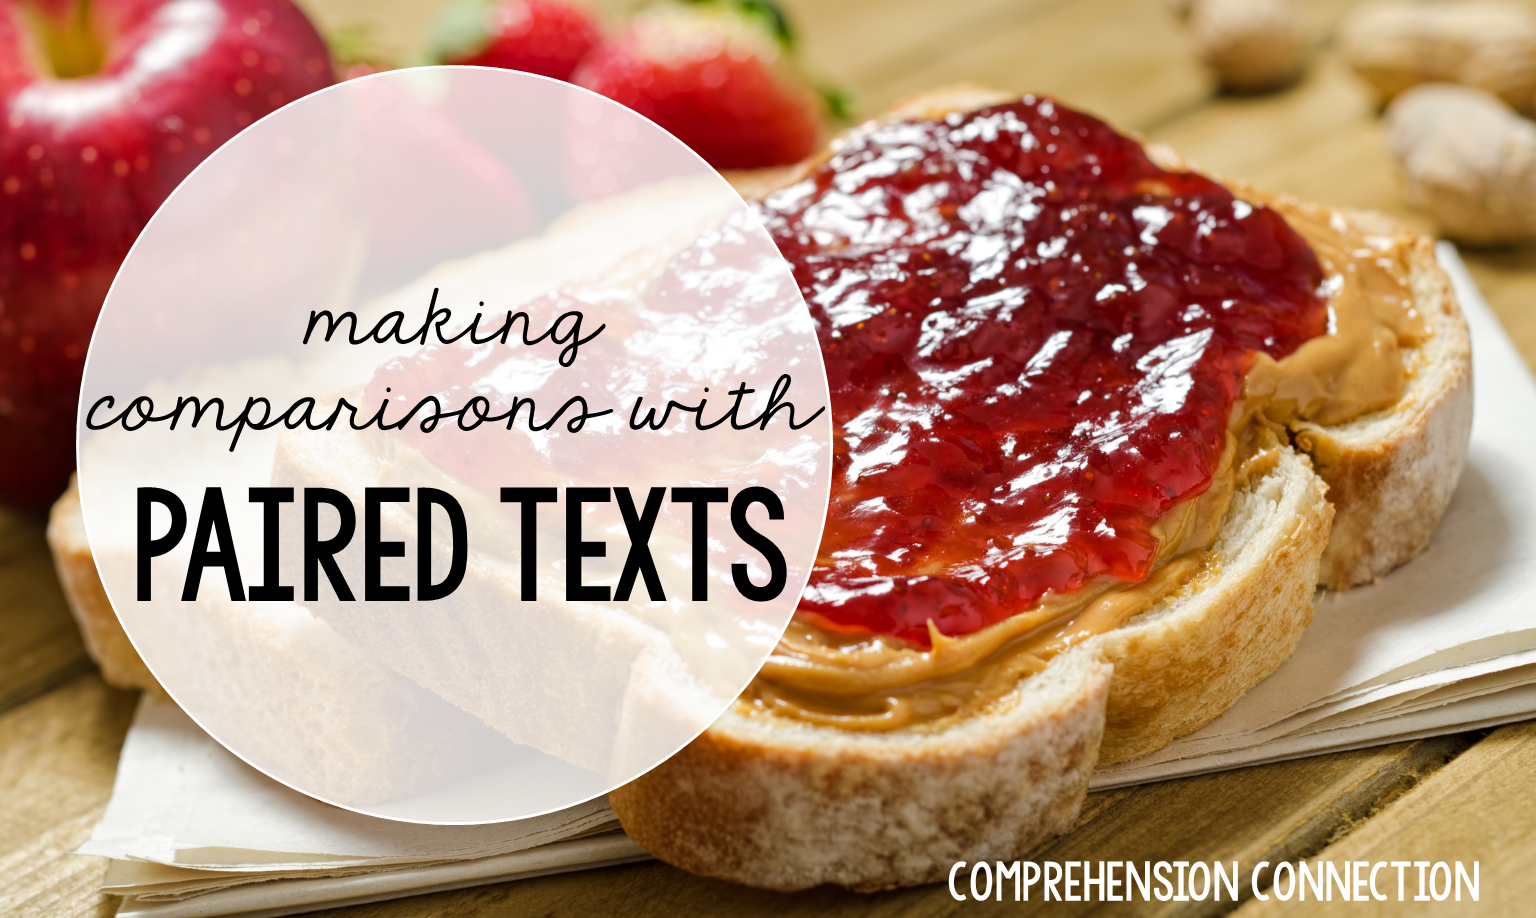 Making comparisons across texts is an important reading skill. In this post, you'll learn about pairing texts for your mentor text lessons.